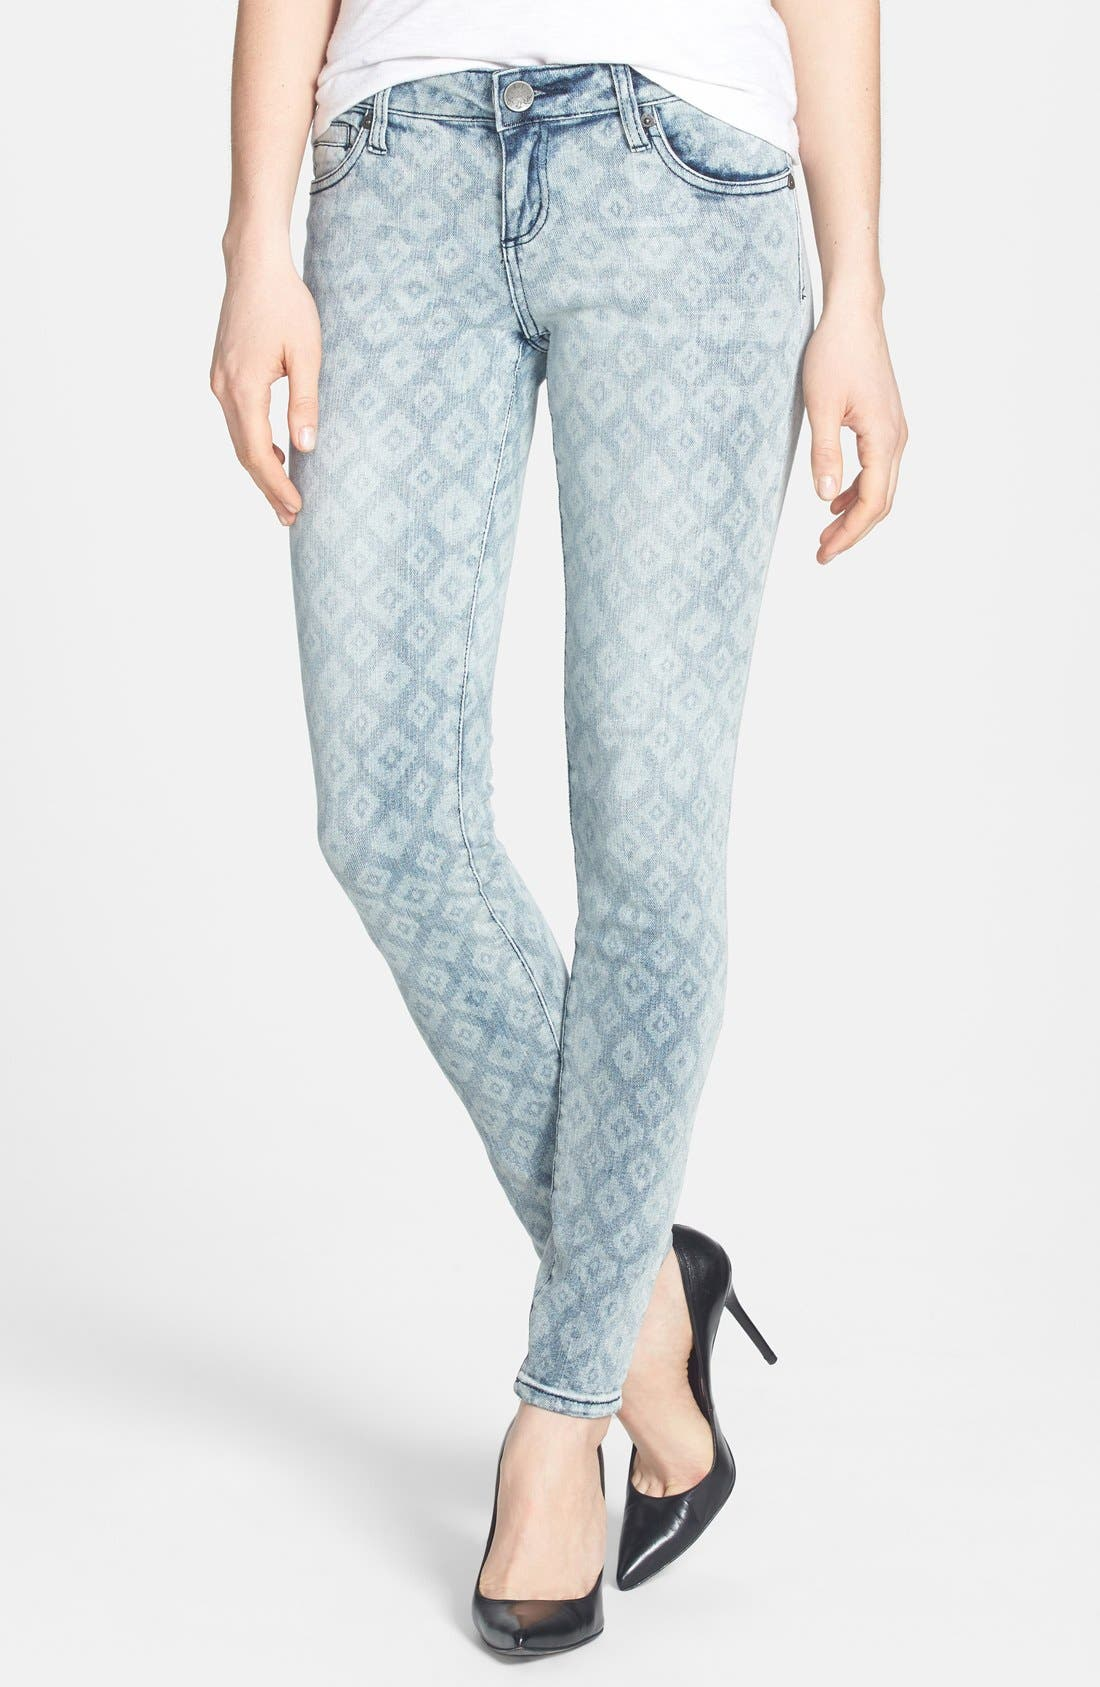 Alternate Image 1 Selected - KUT from the Kloth 'Mia' Print Stretch Skinny Jeans (Young)